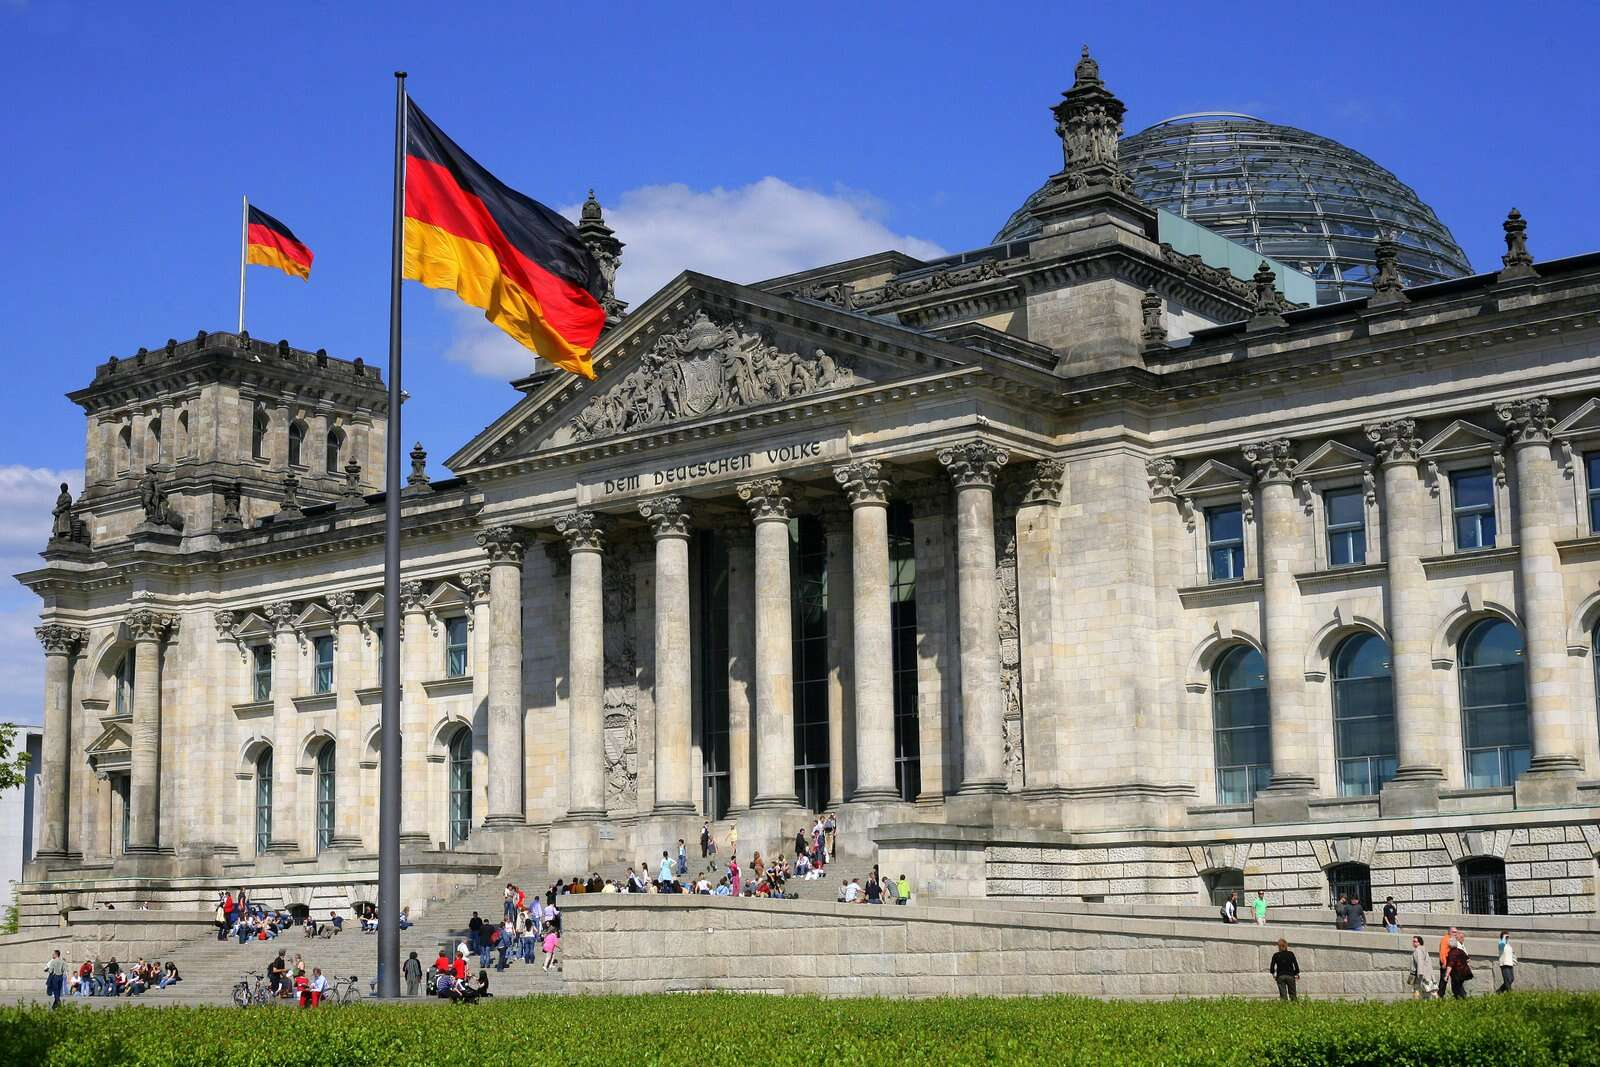 Evolution of architecture in Reichstag